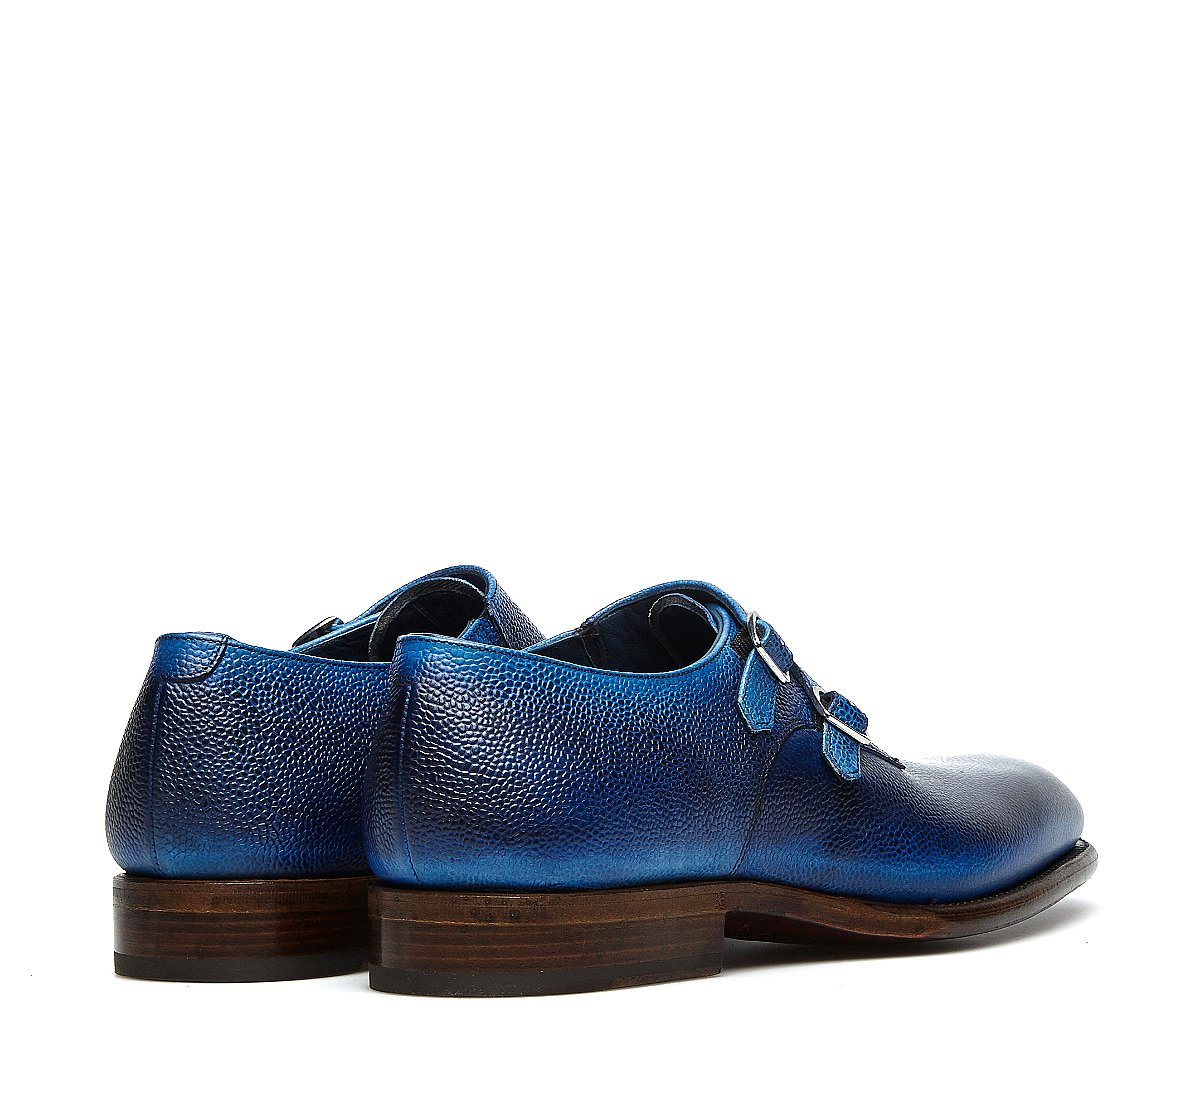 Fabi Flex Goodyear double monk strap shoes